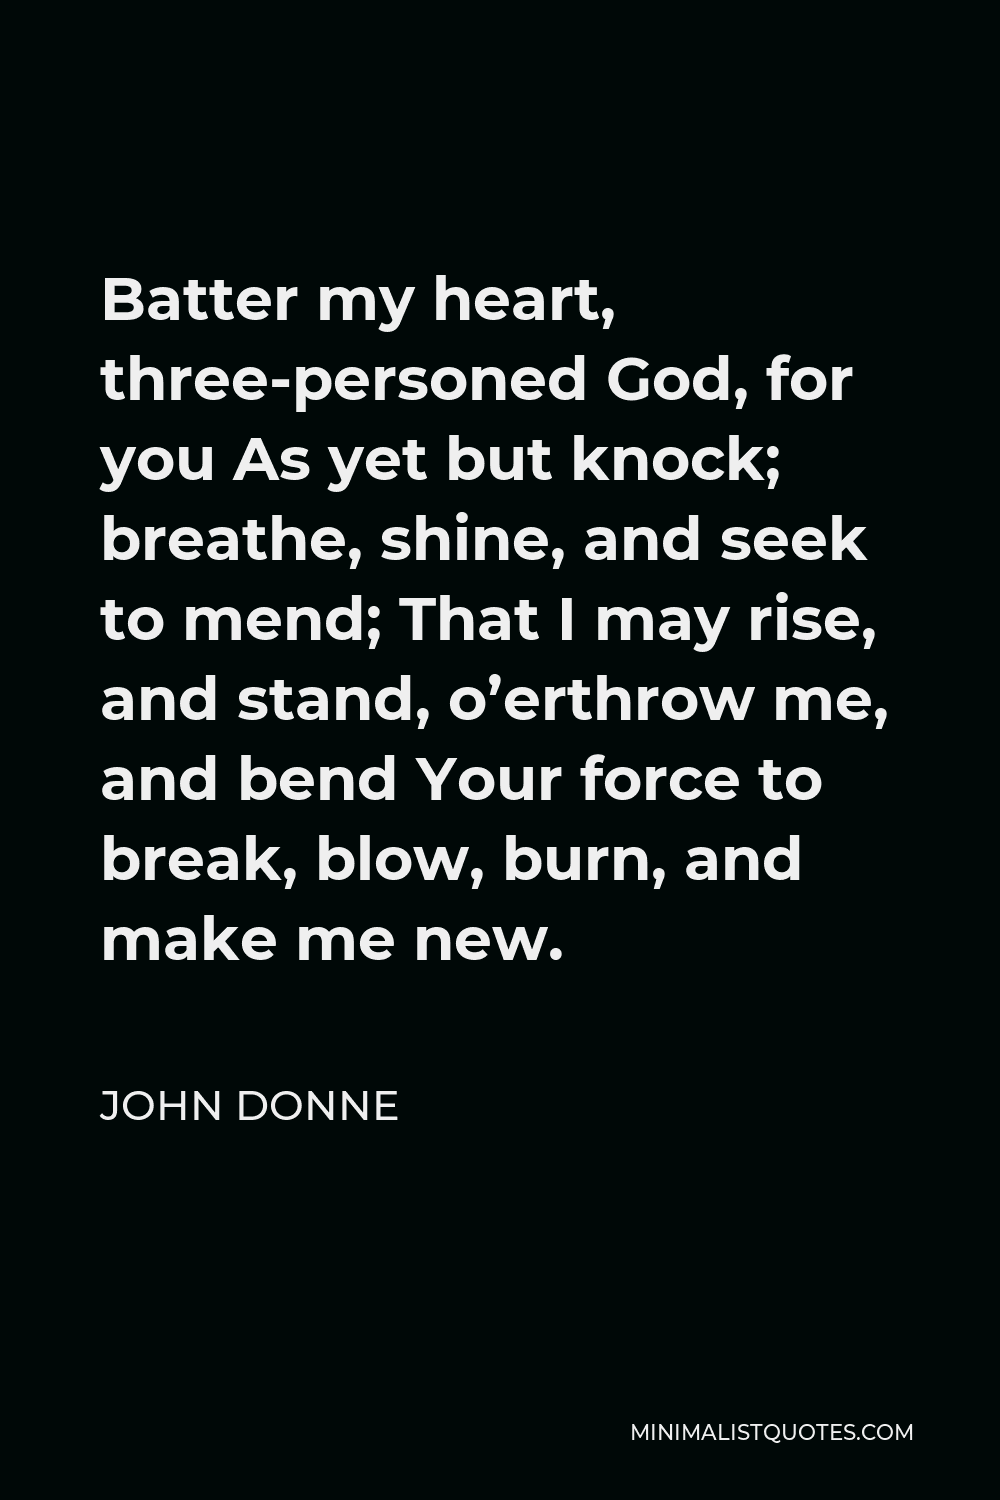 John Donne Quote - Batter my heart, three-personed God, for you As yet but knock; breathe, shine, and seek to mend; That I may rise, and stand, o'erthrow me, and bend Your force to break, blow, burn, and make me new.